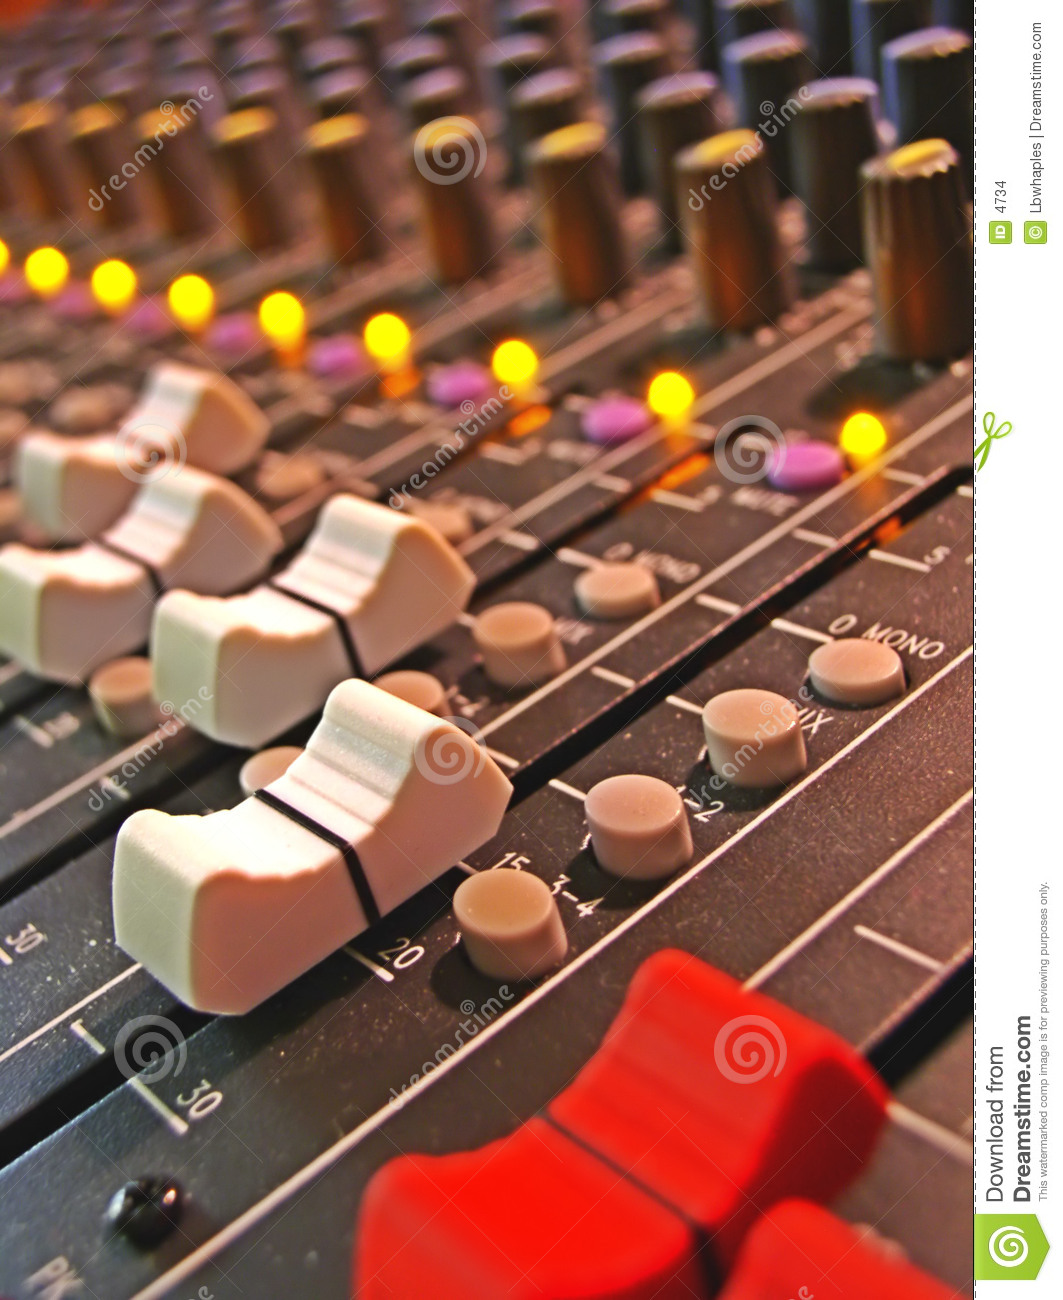 Audio board mixing sliders